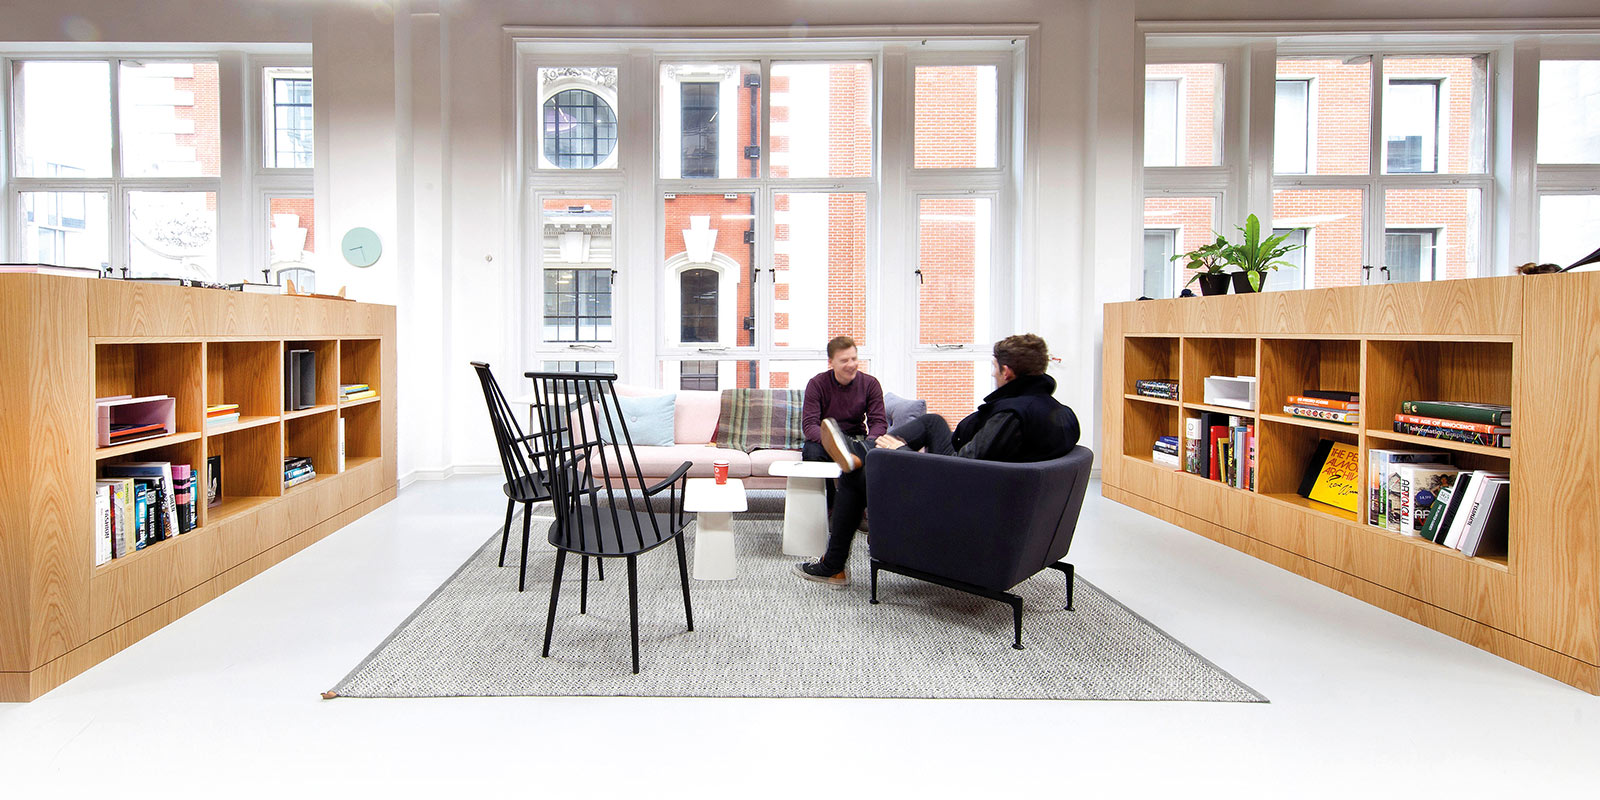 Spaces users chatting in the coworking space with designer furniture and meeting rooms to rent.